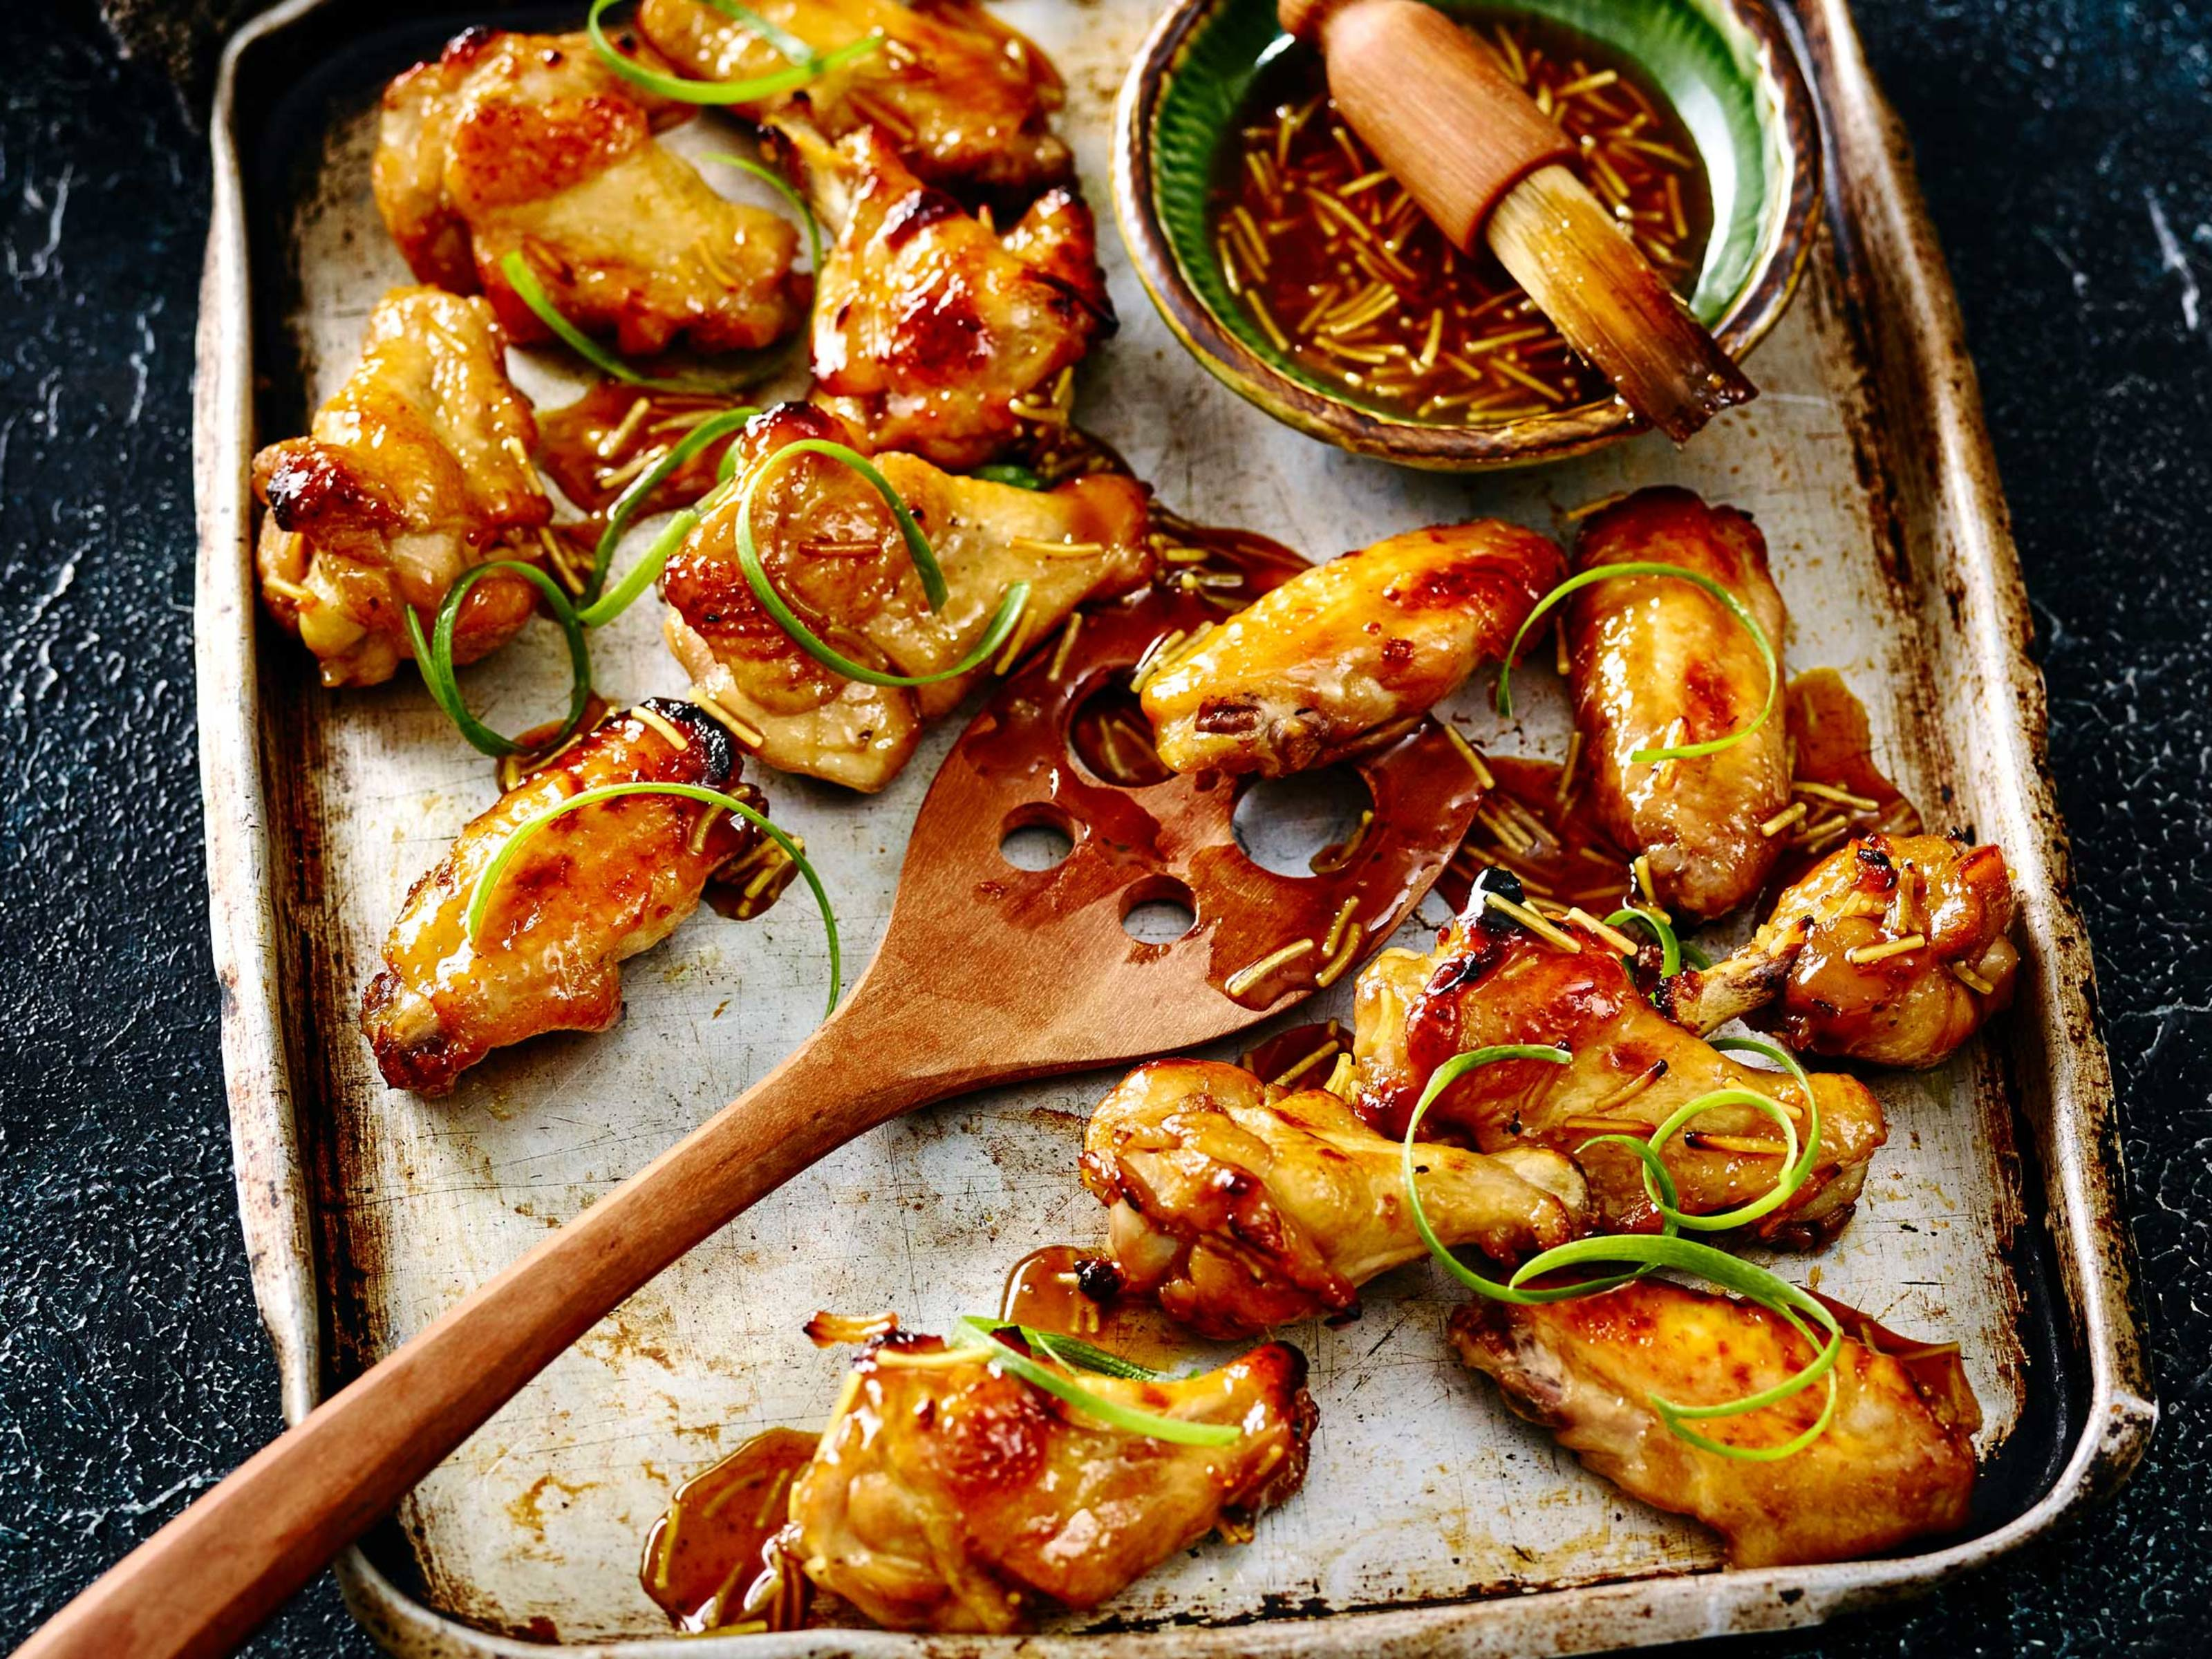 Chicken recipes mid week meal continental forumfinder Choice Image